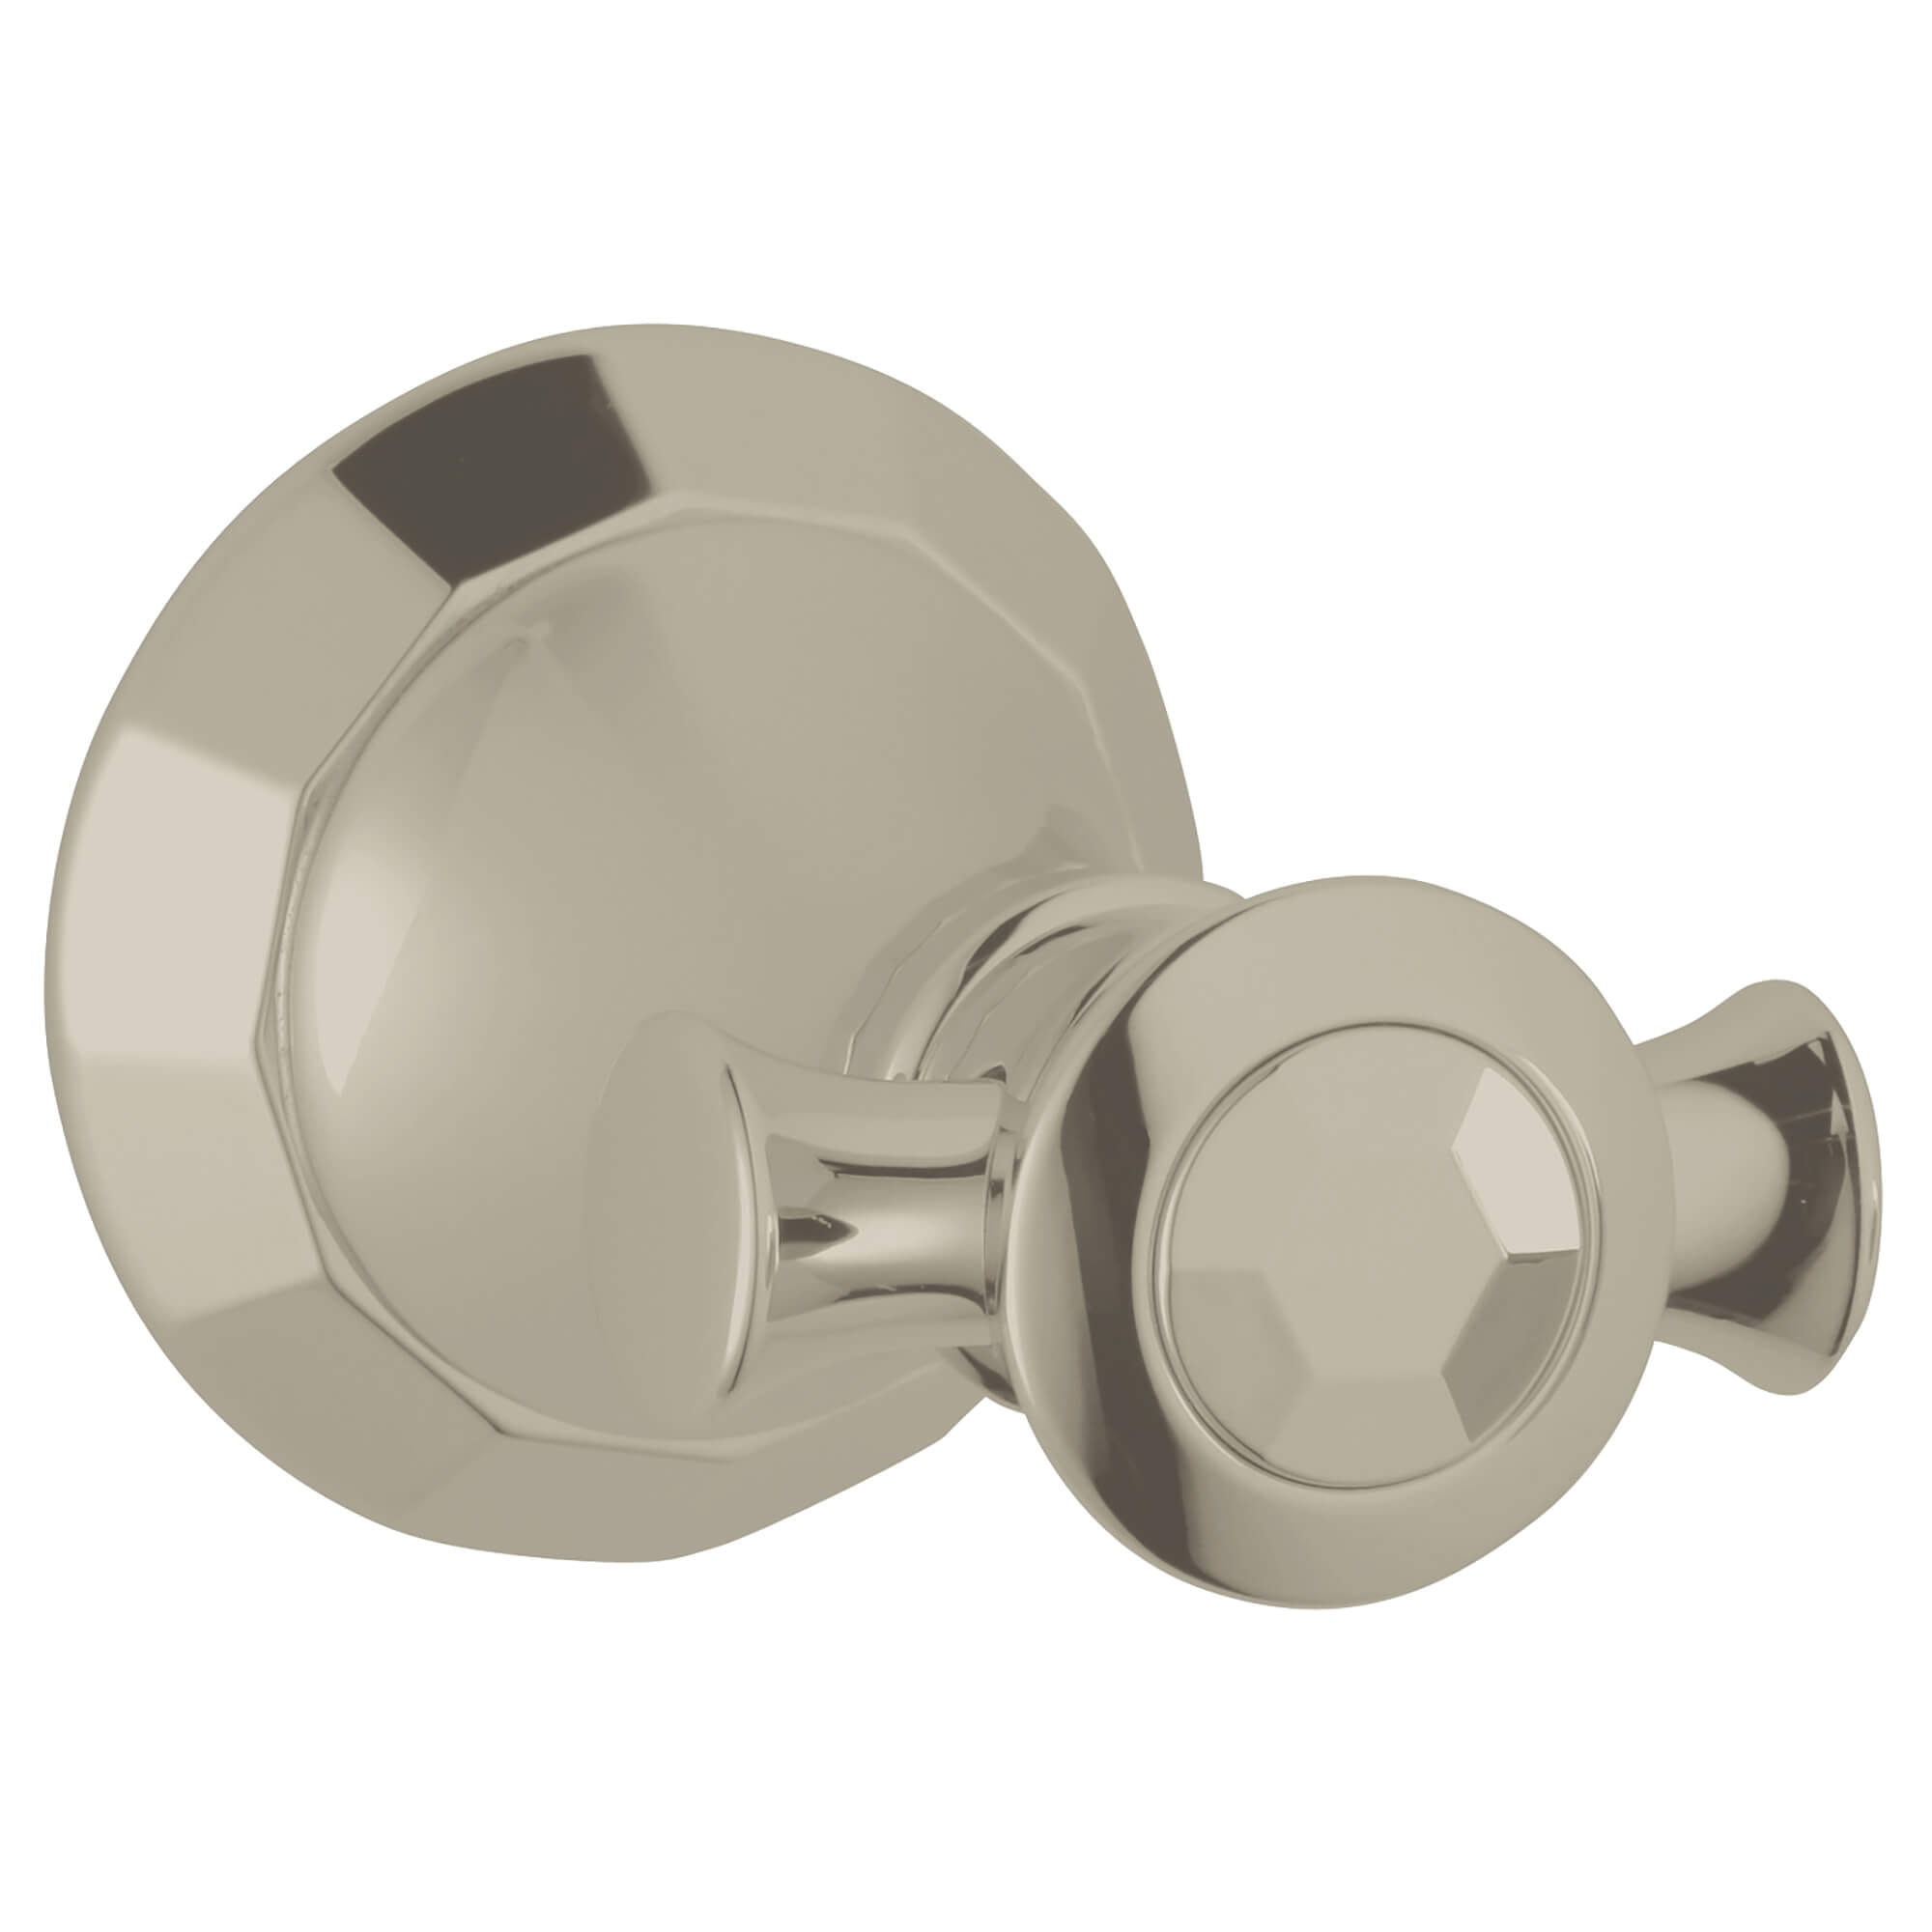 Robe Hook GROHE BRUSHED NICKEL